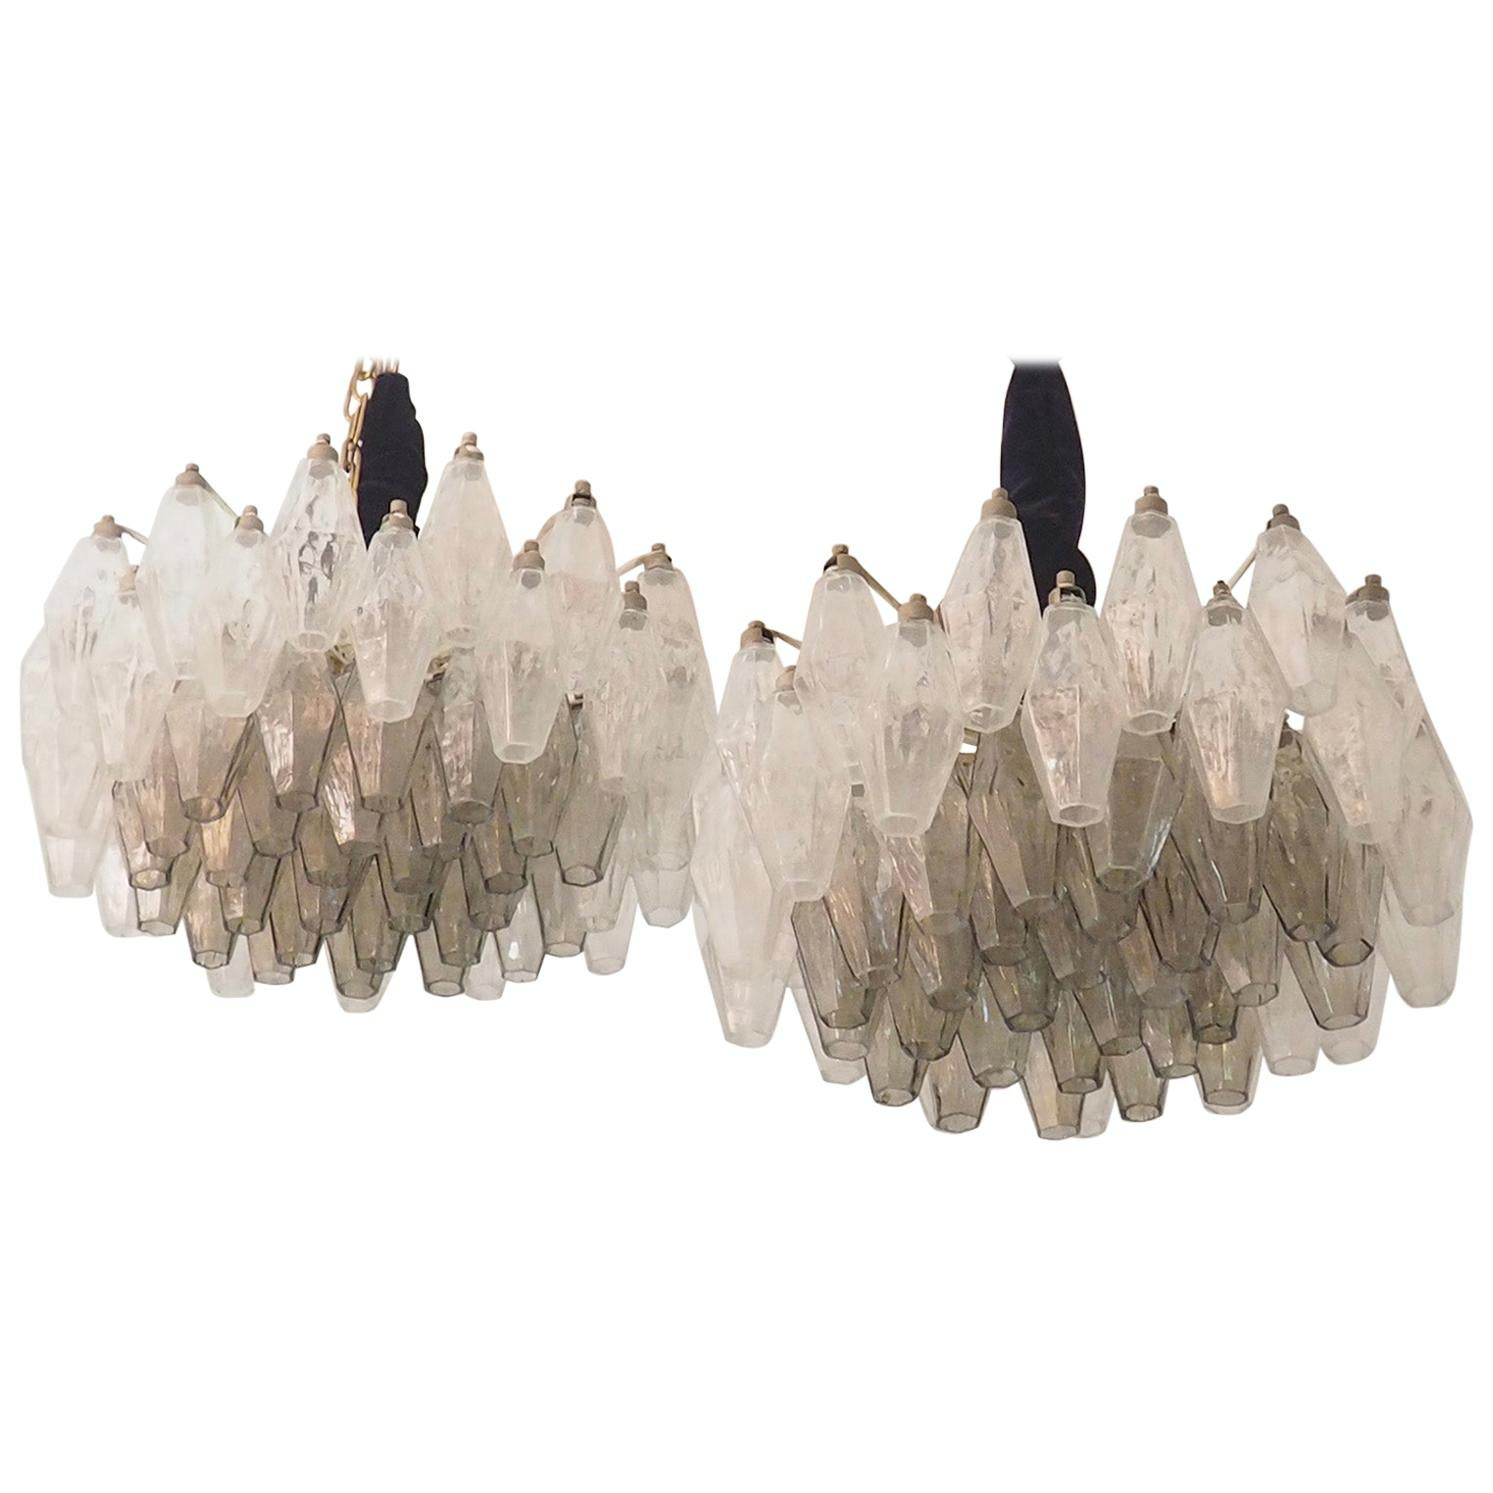 Mid Century Pair of Glass Chandeliers Poliedri by Carlo Scarpa for Venini, 1960s